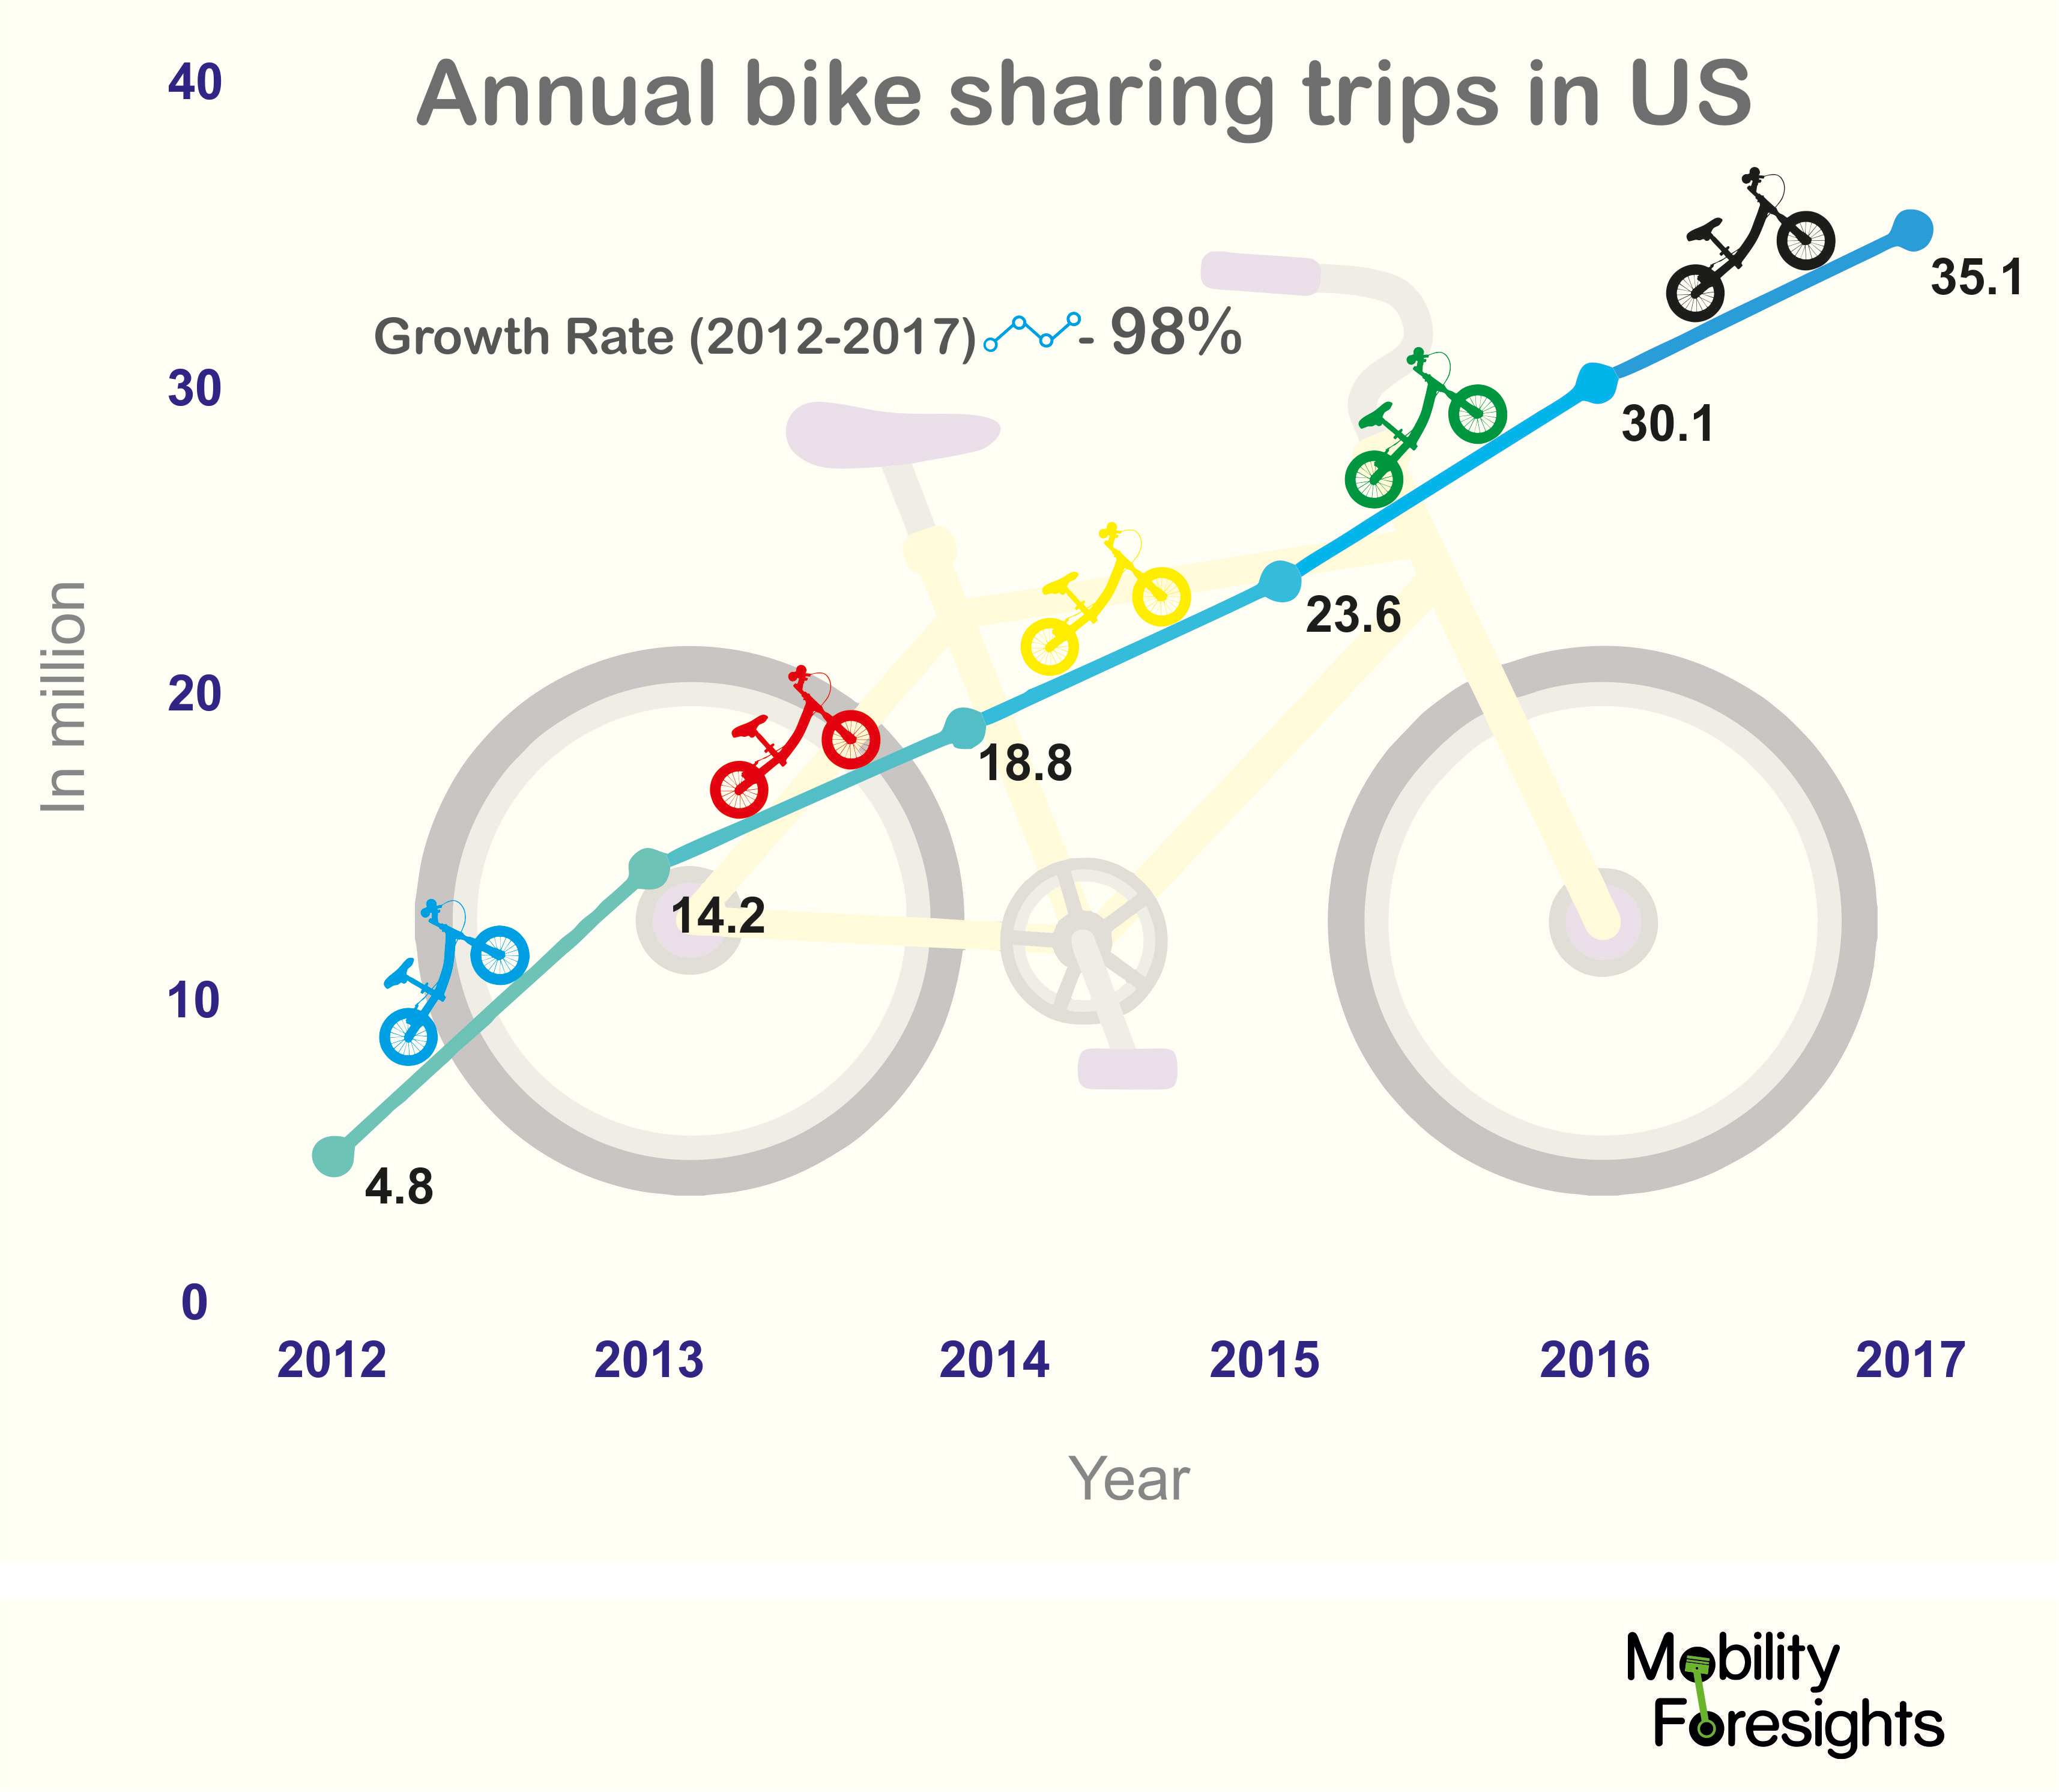 the annual bike sharing trips in Us have grown at a rate of 98% in past 5 years . what is the reason behind that?